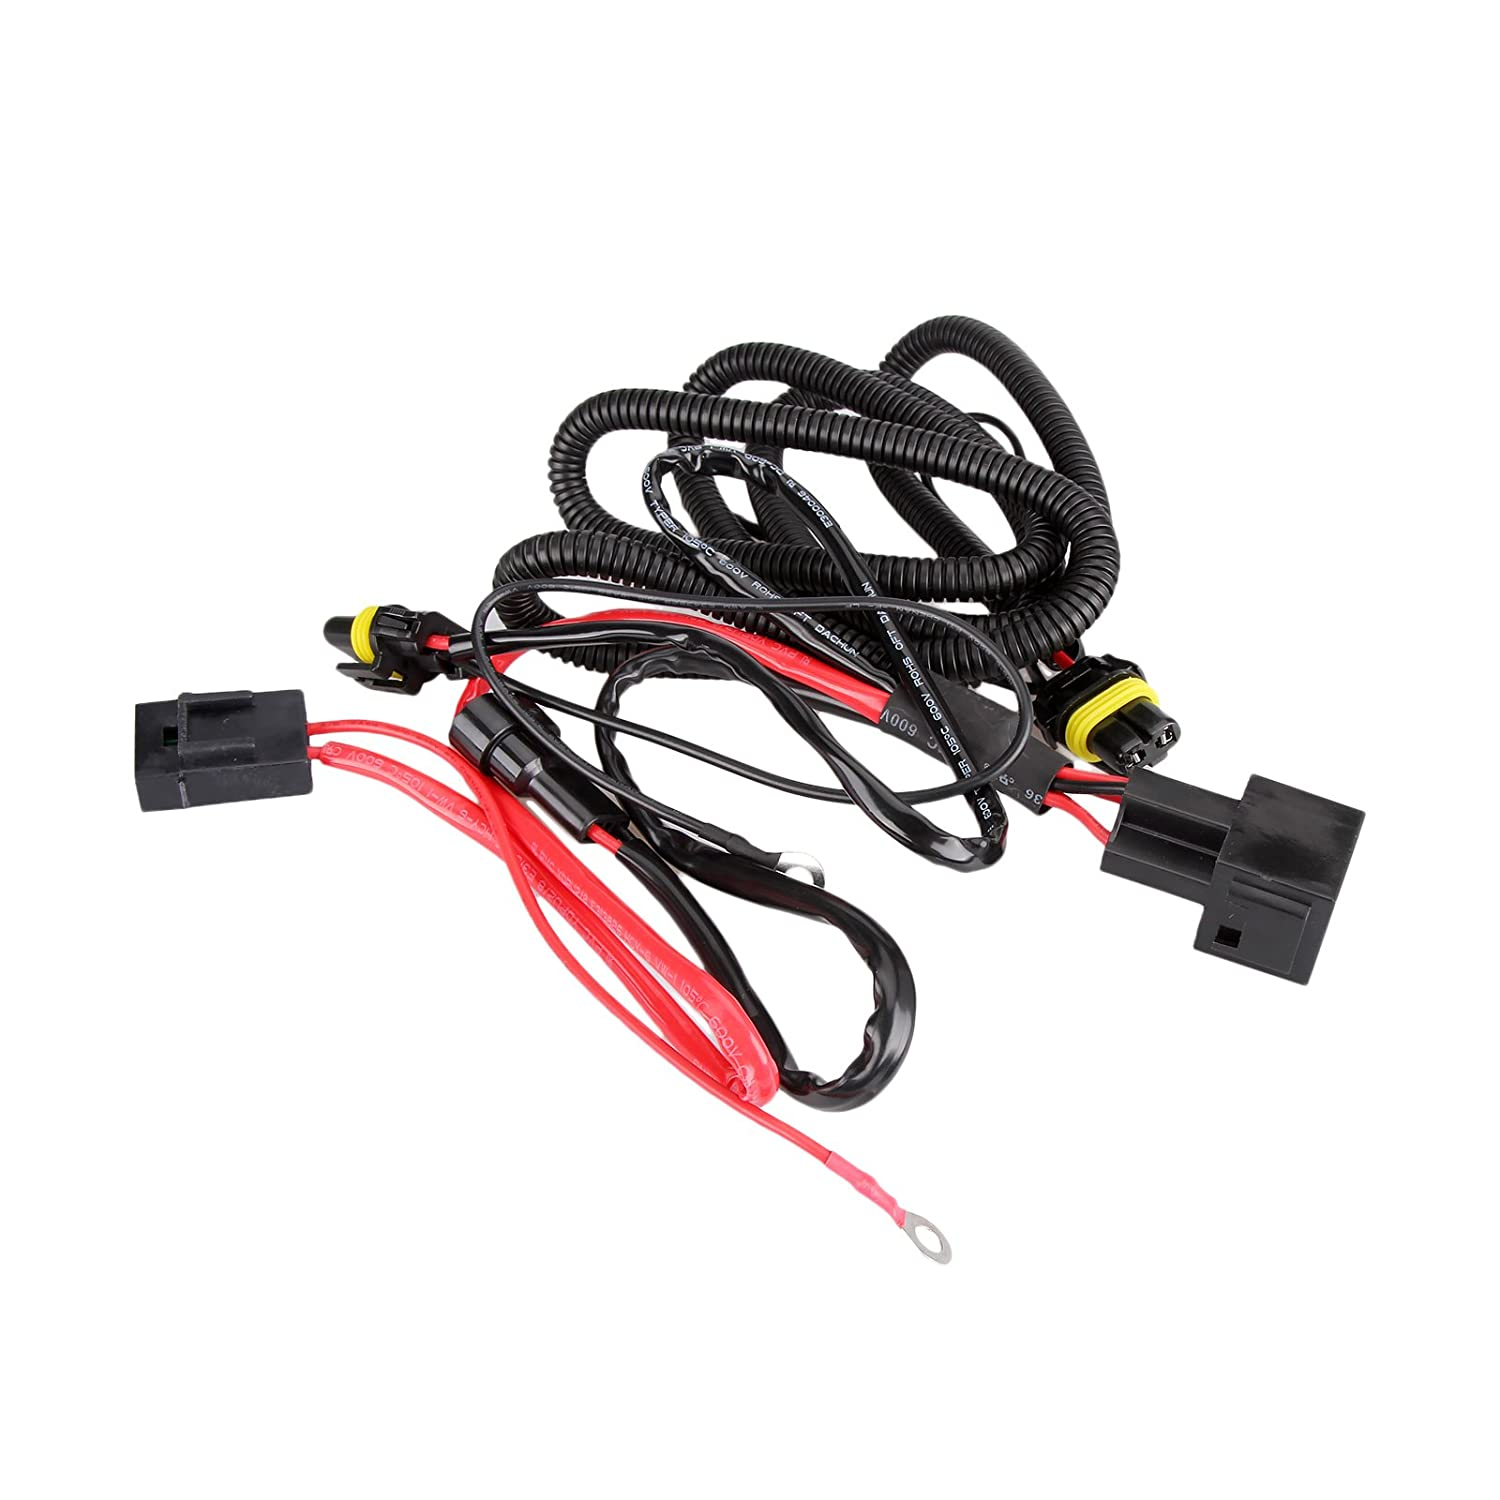 Dromedary Xenon Hid Conversion Kit Relay Wiring Harness H1 H7 H8 H9 H11 9005 9006 5202